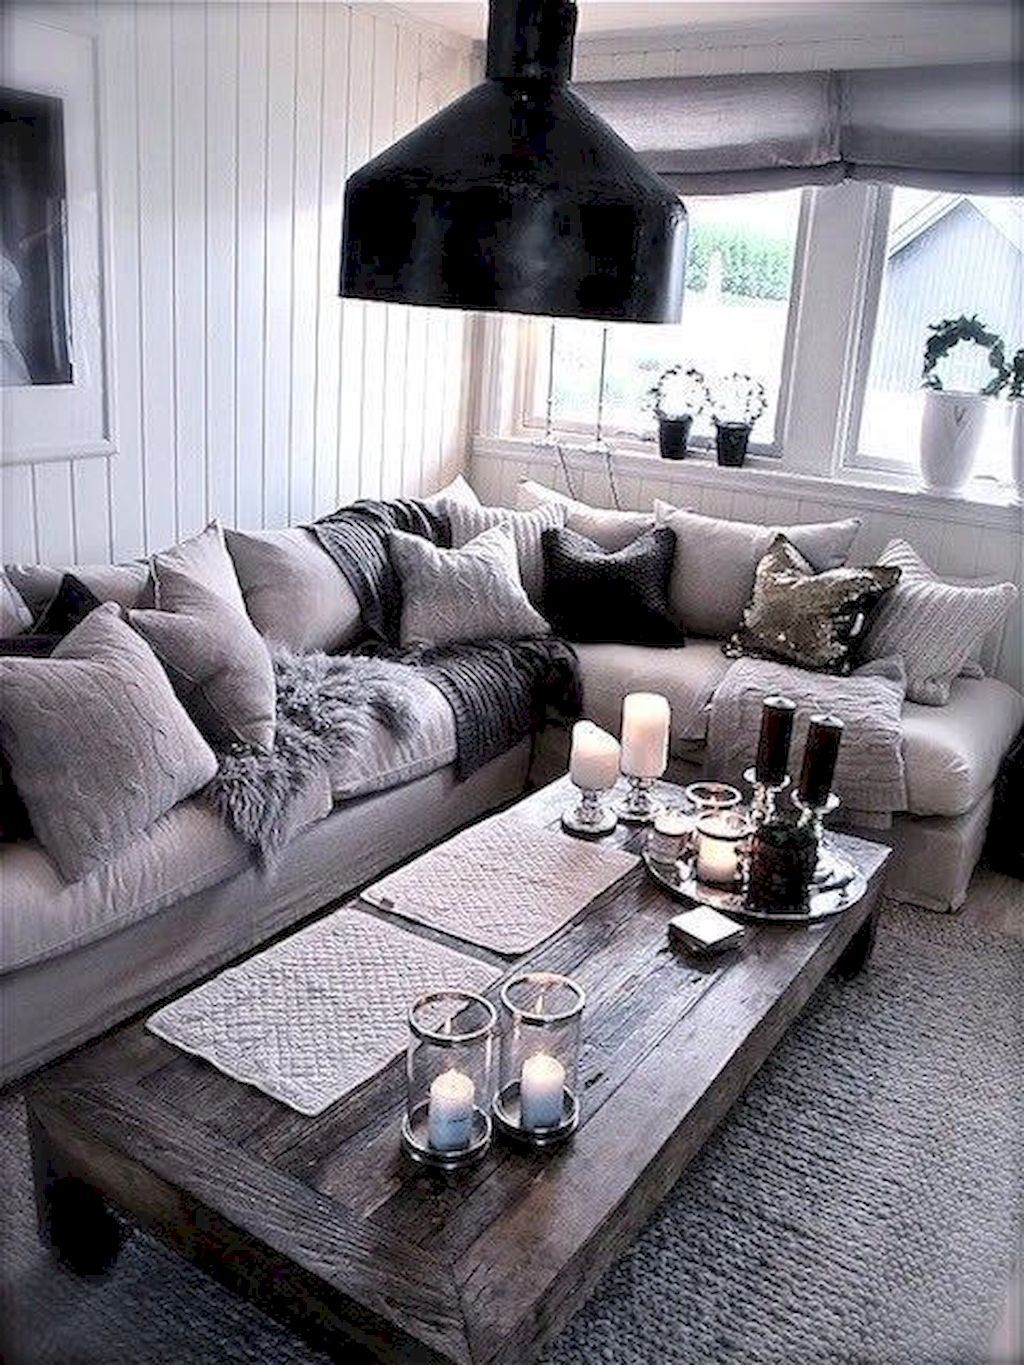 beautiful living room home decor that cozy and rustic chic